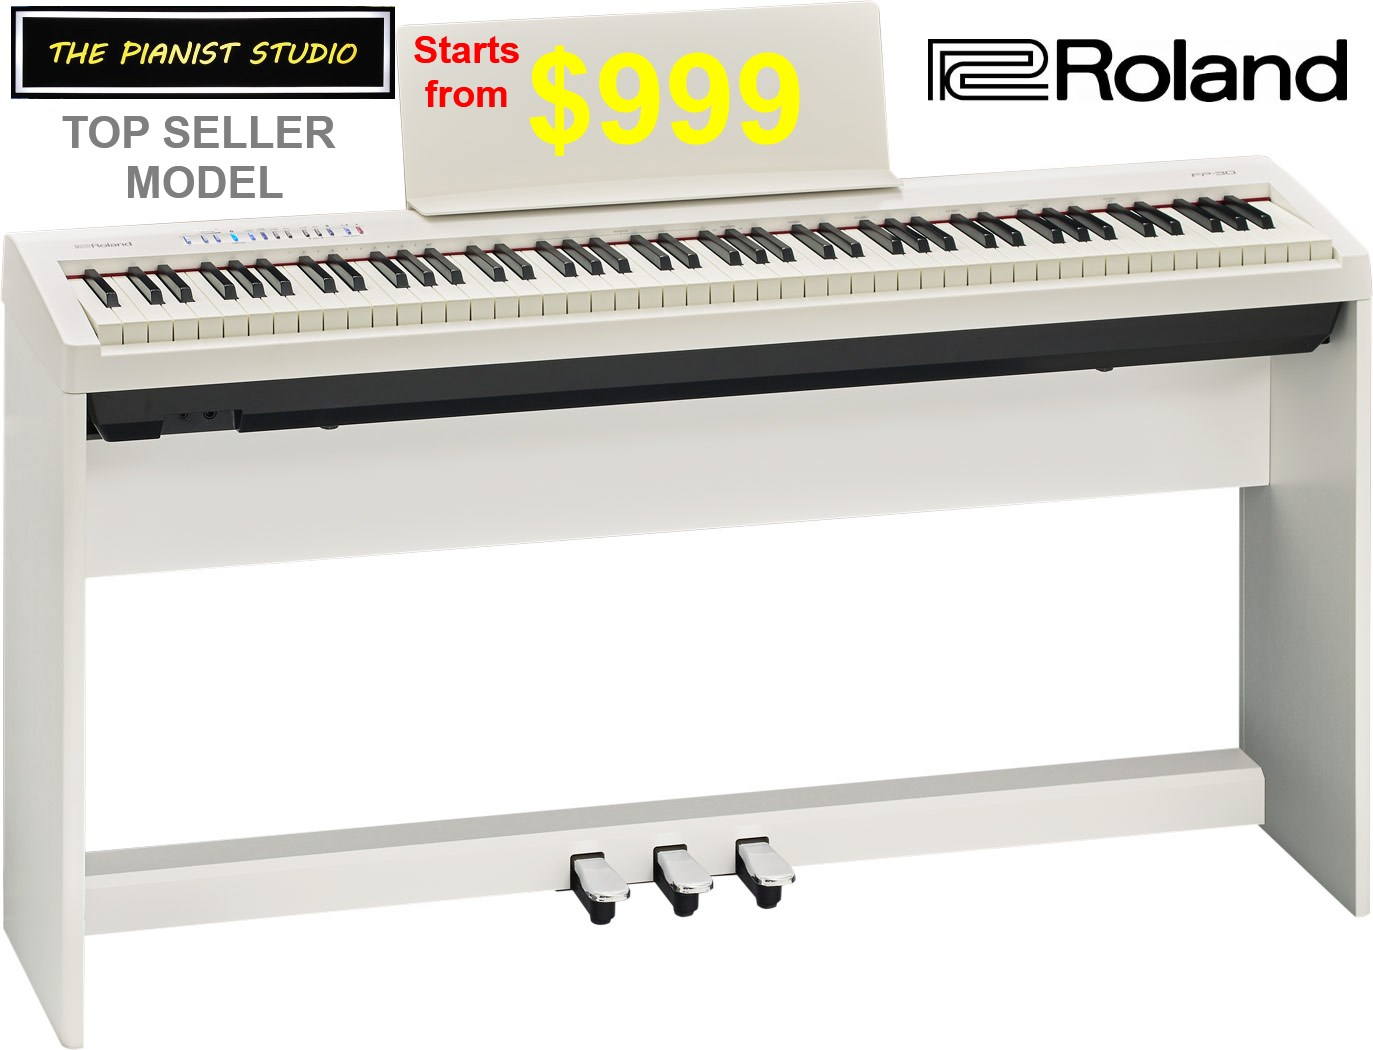 Roland Fp 30 Digital Piano Singapore Sale The Pianist Studio Music Media Music Instruments On Carousell